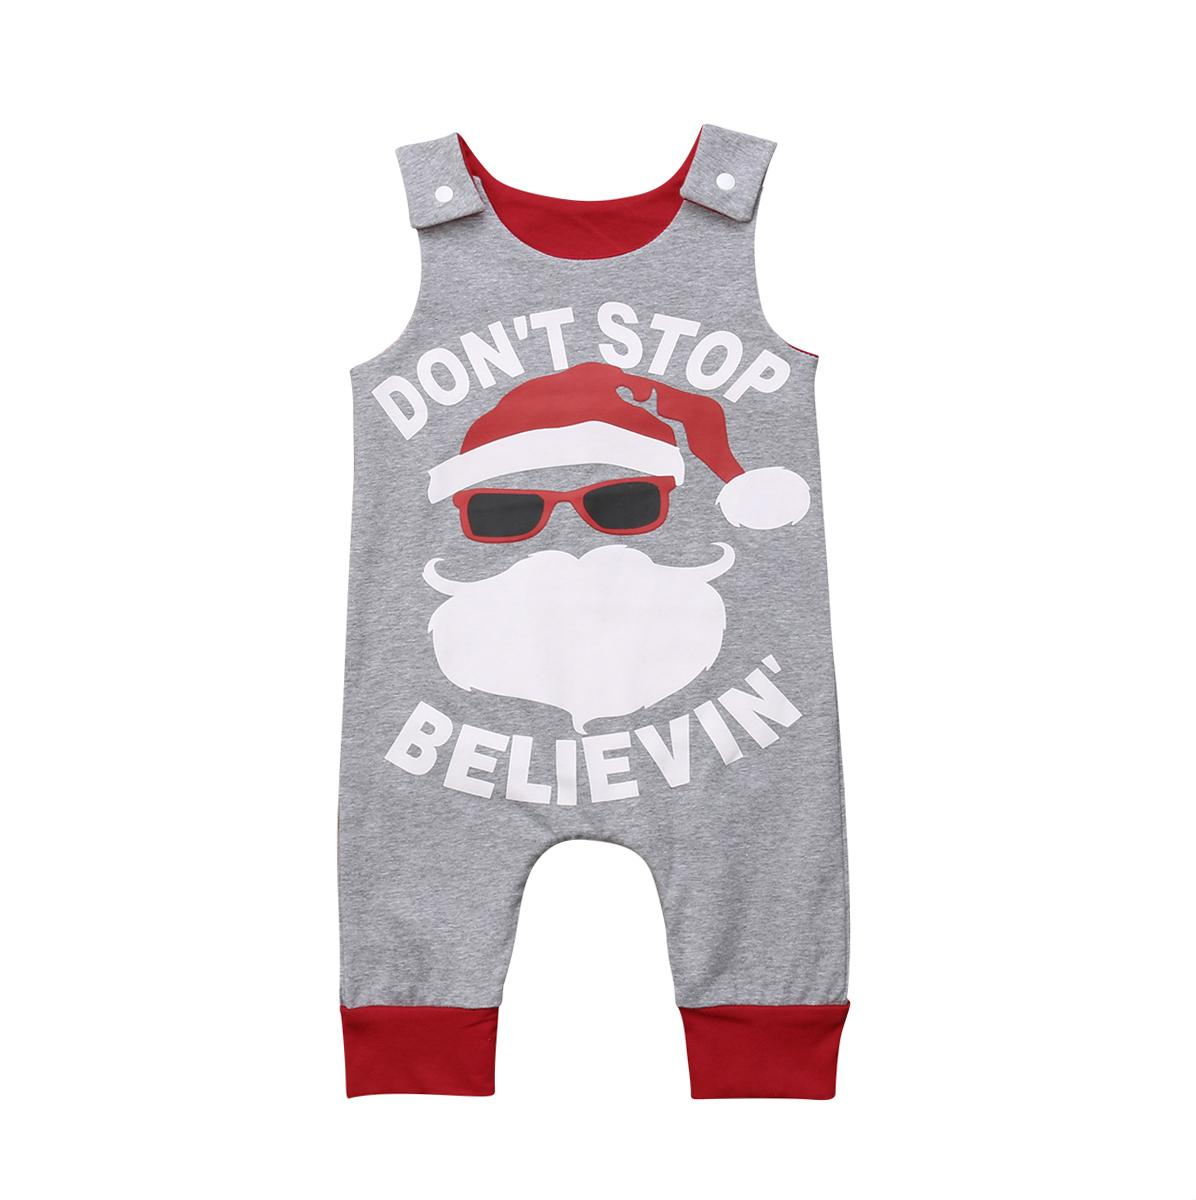 7114b1dfa2f 2019 Christmas Baby Girl Boy Romper Jumpsuit Playsuit Santa Claus Sleeveless  Cotton Toddlers Newborn Baby Clothing Y18102907 From Gou07